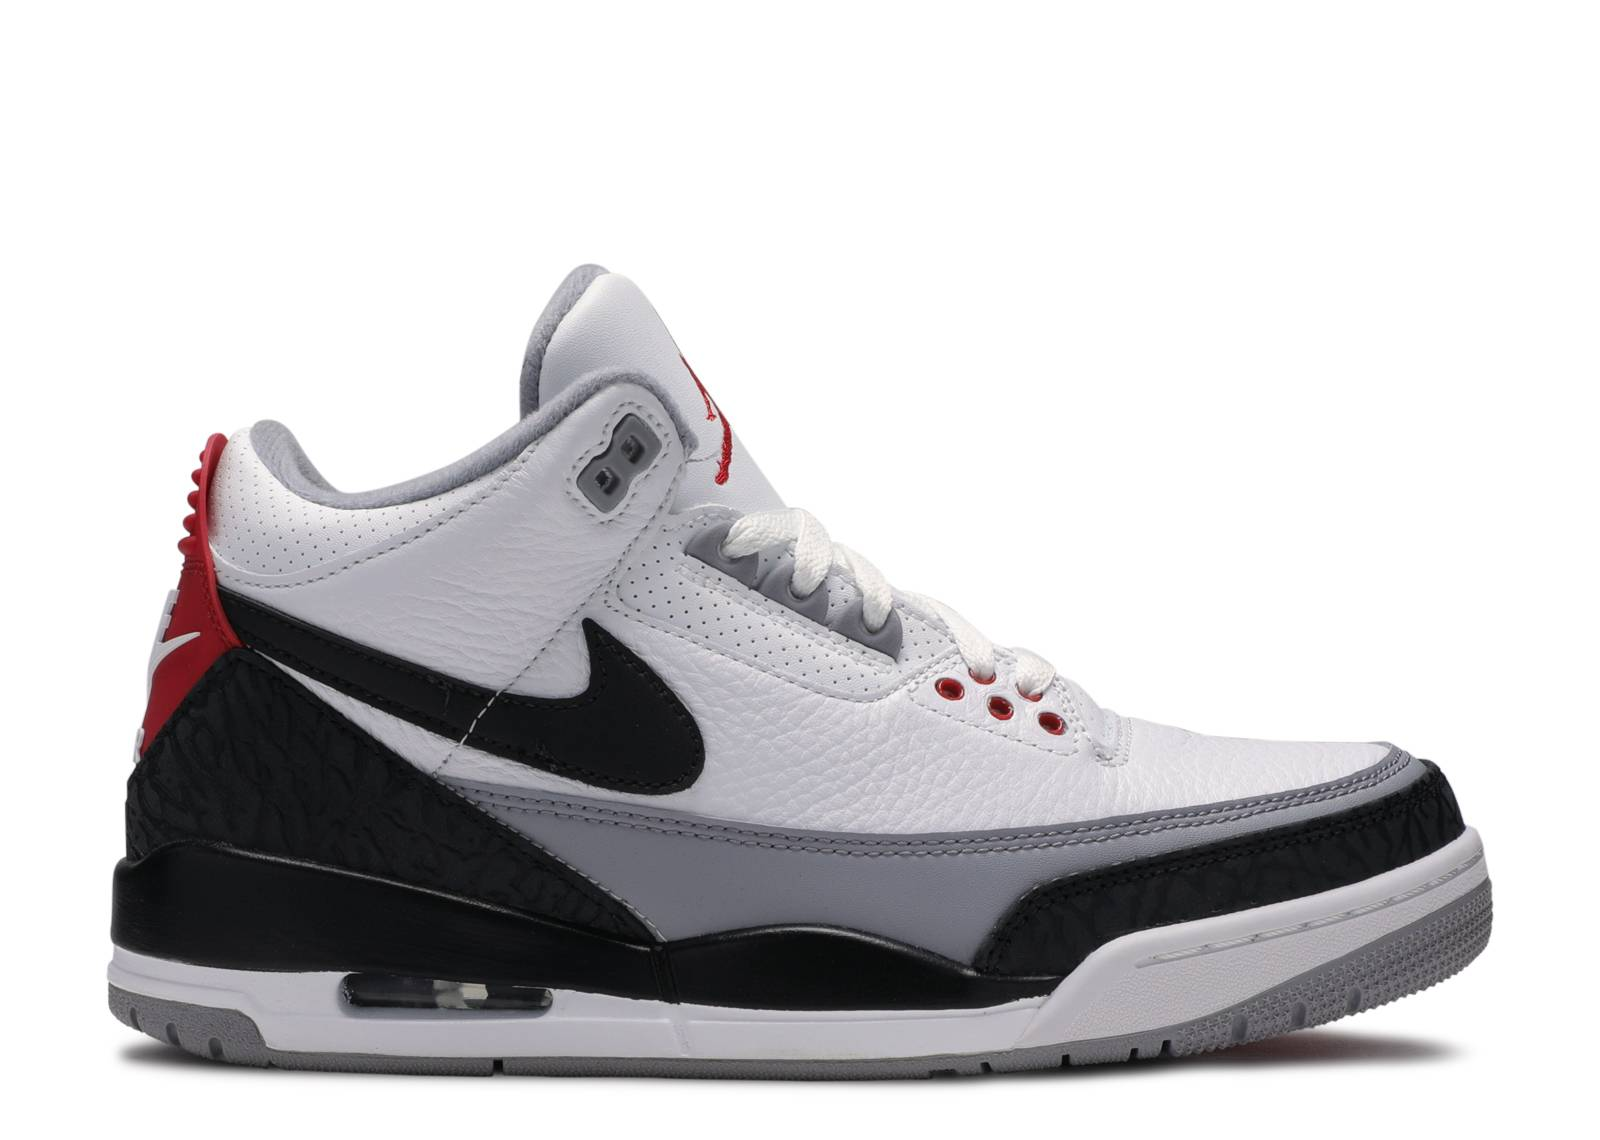 low priced 5fc30 2f935 Air Jordan 3 (III) Shoes - Nike | Flight Club